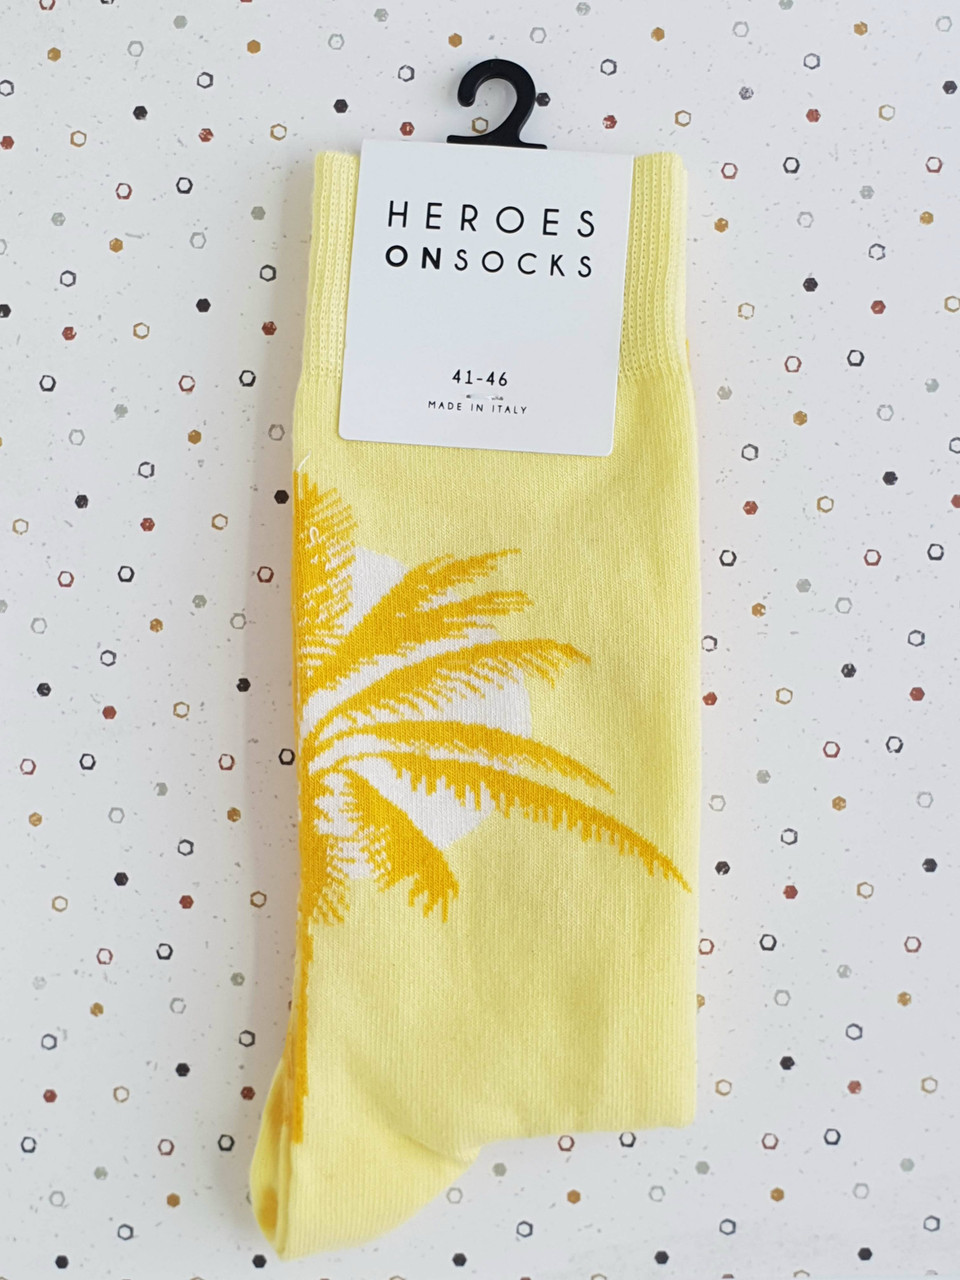 497350bbcbf91 Palms Large Yellow Socks (Pair) - Heroes on Socks